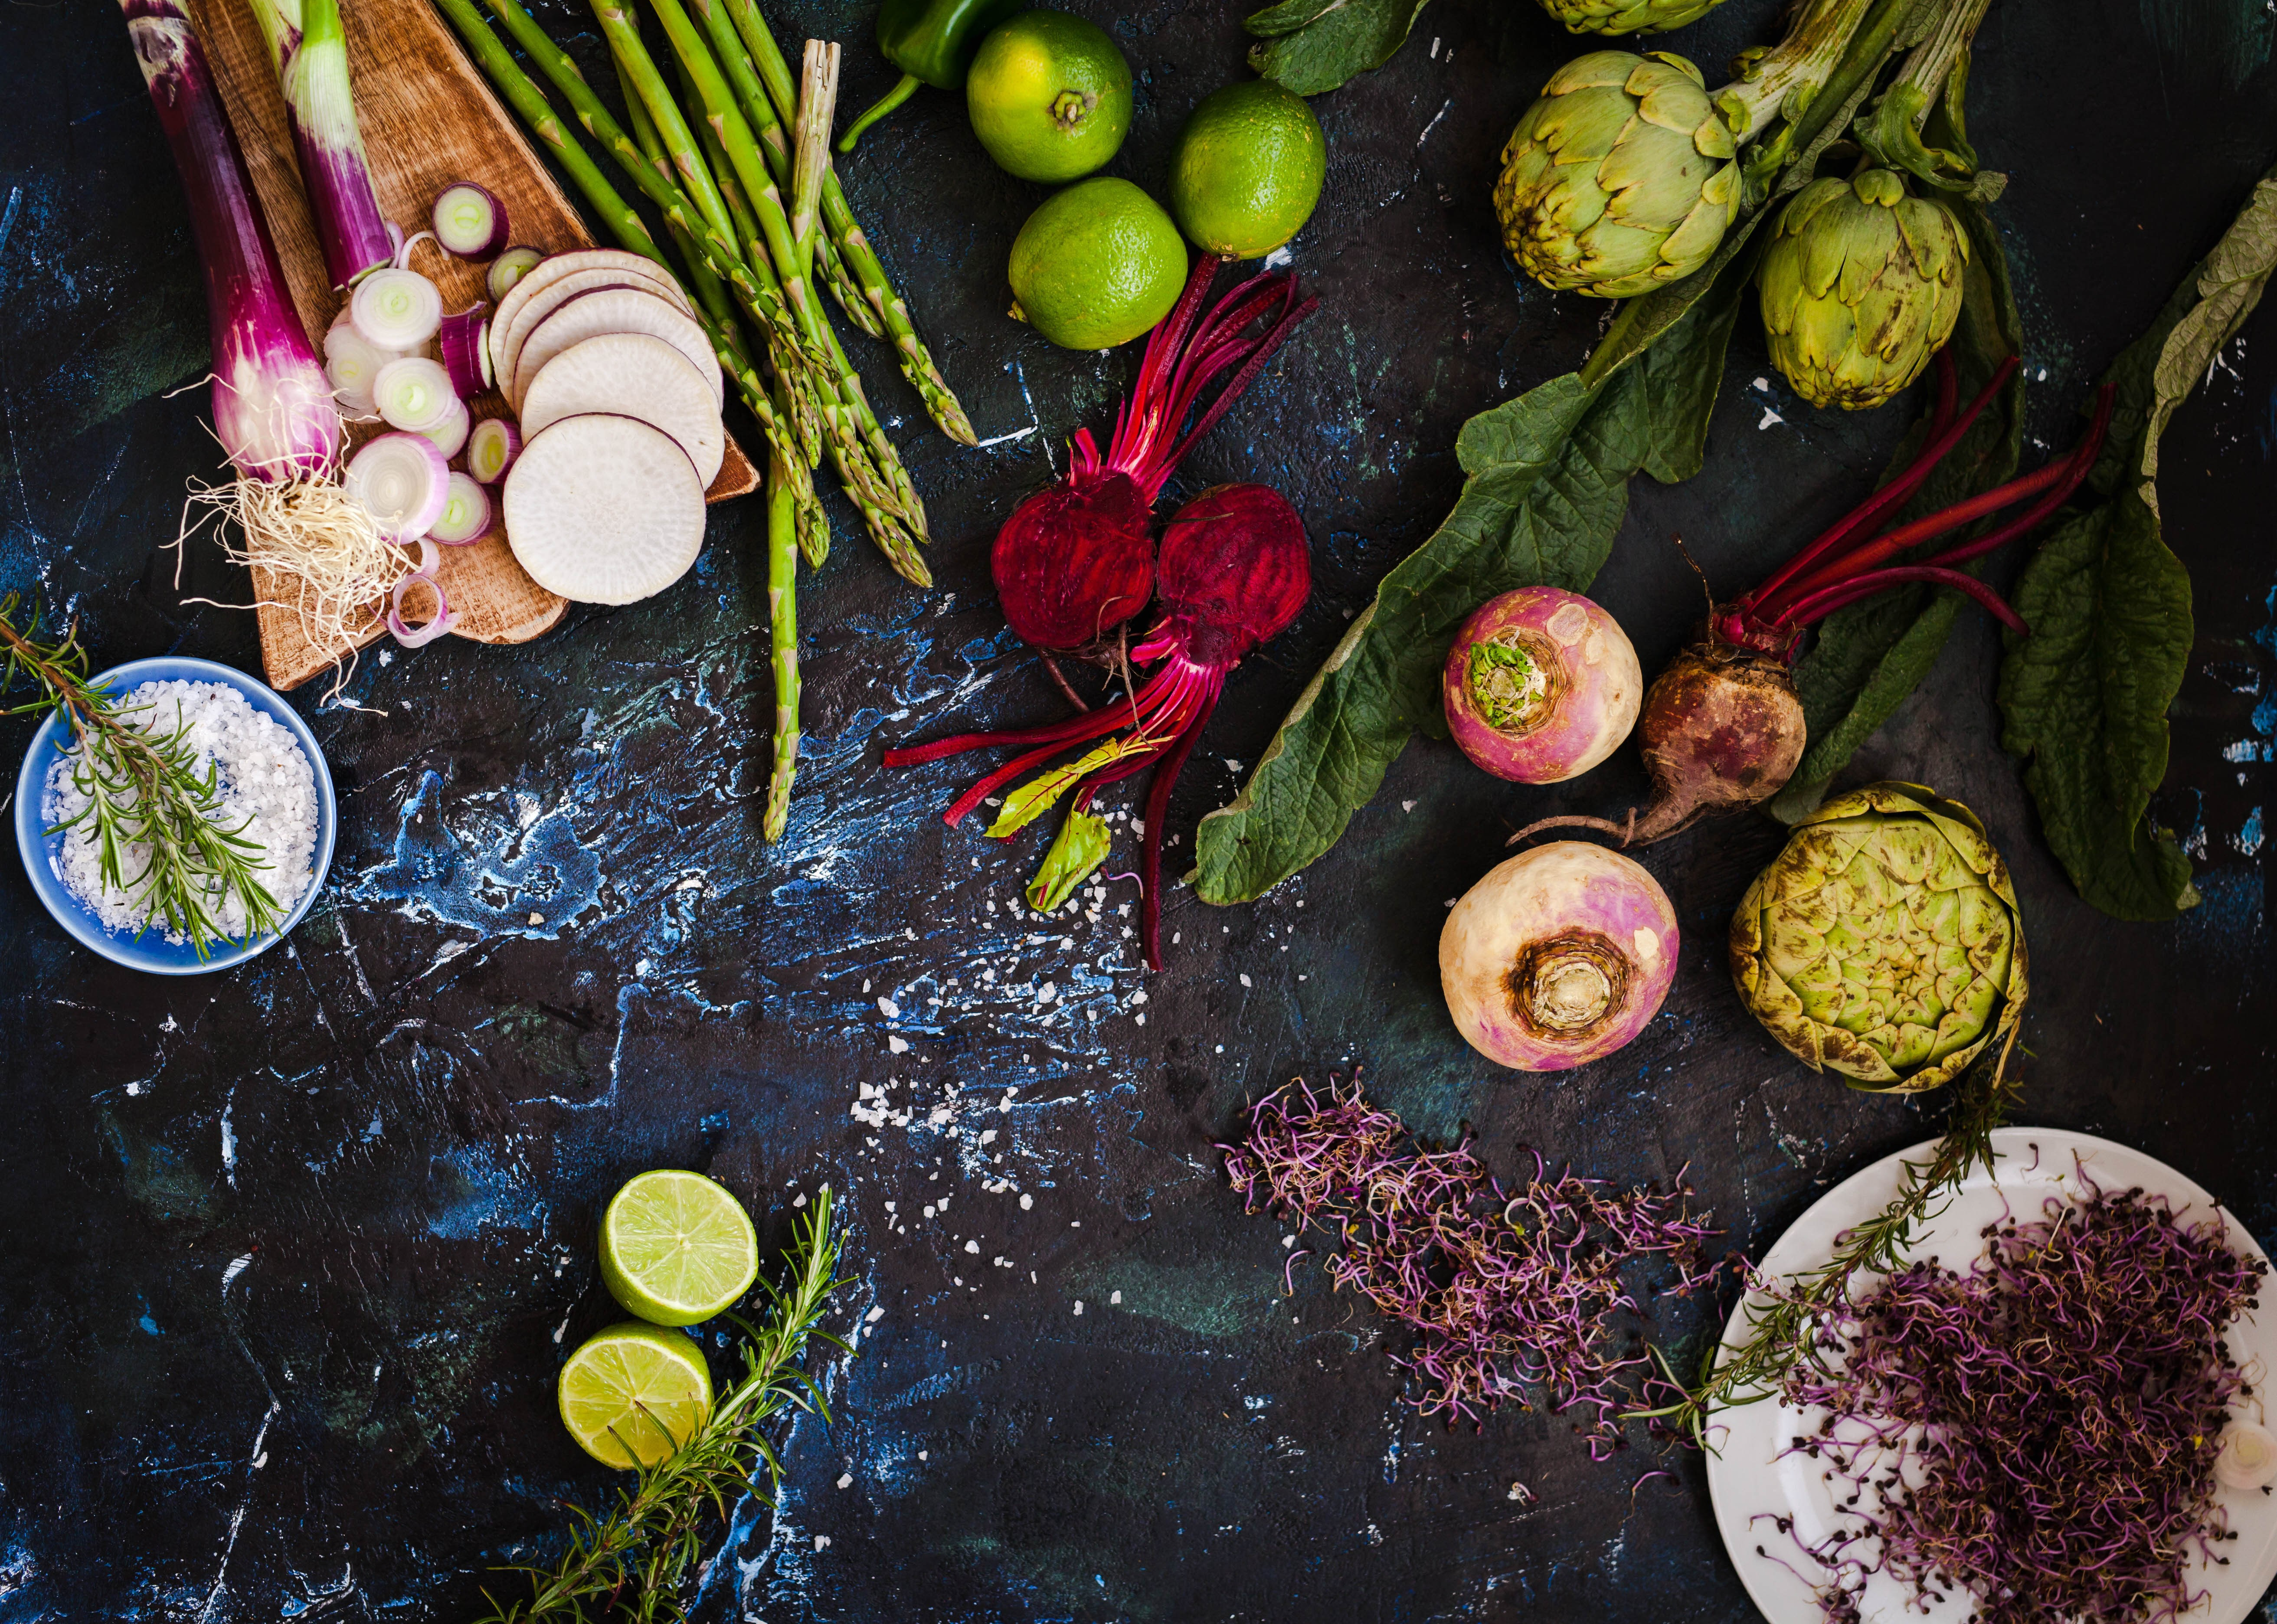 fruits-and-vegetables-on-rustic-background[1].jpg